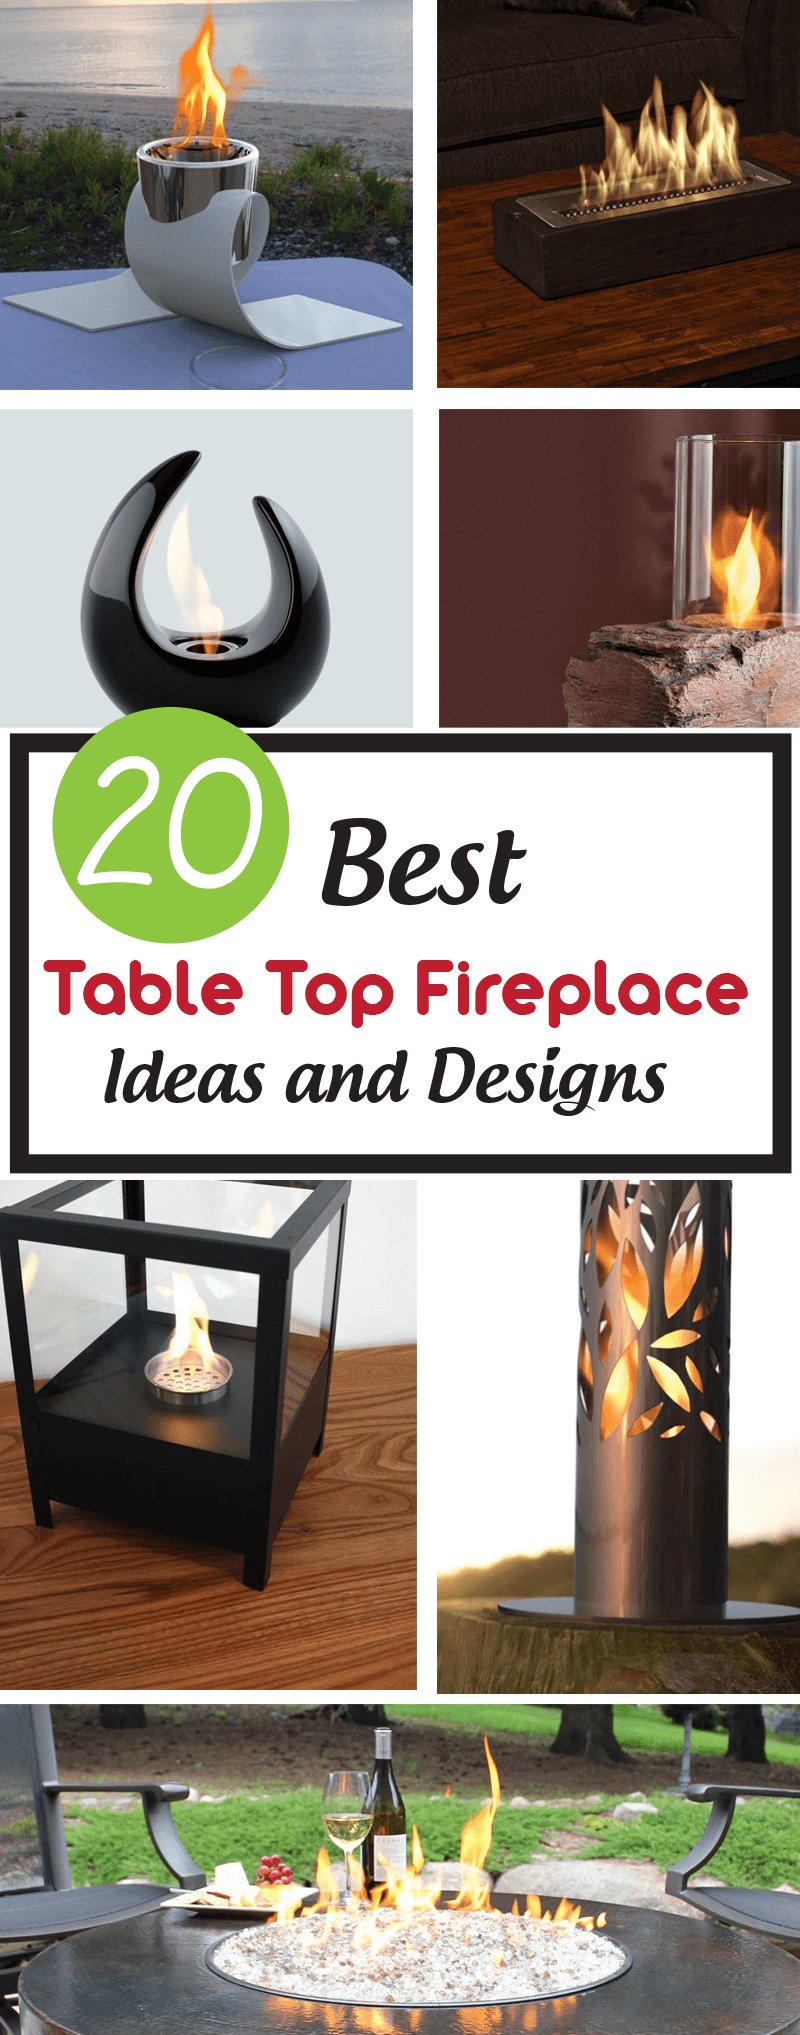 Best Table Top Fireplace Ideas and Designs